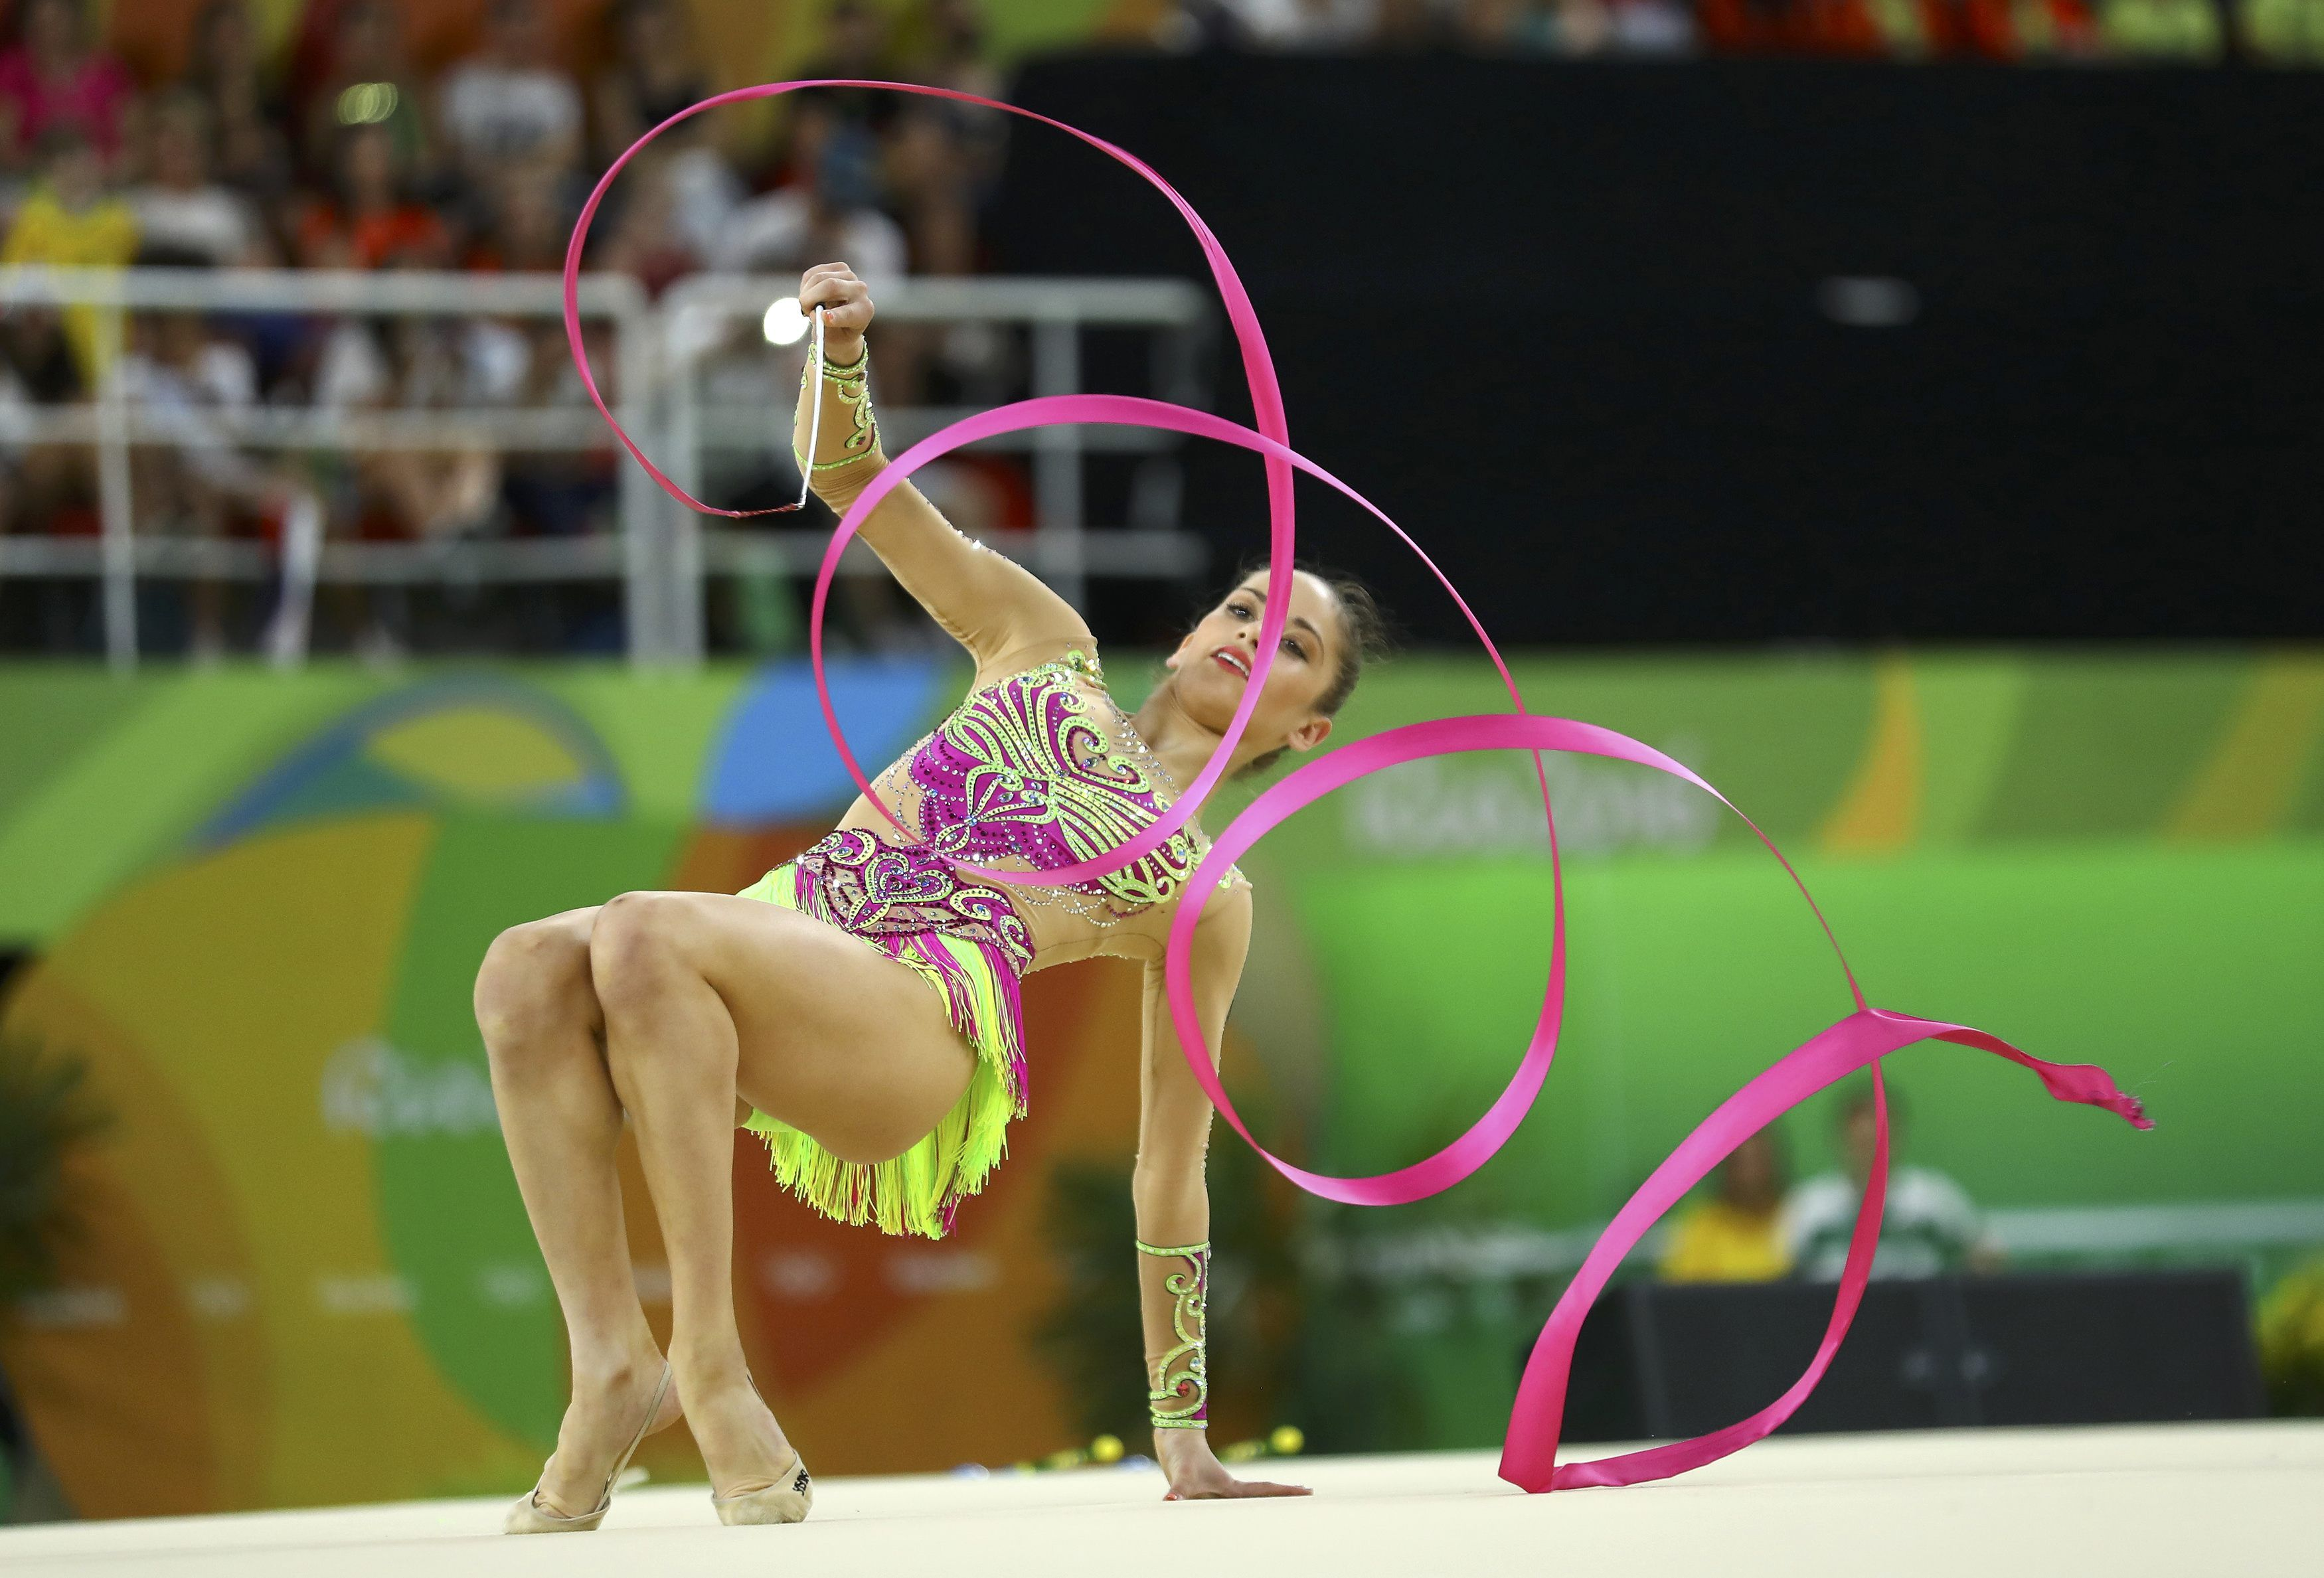 2016 Rio Olympics - Rhythmic Gymnastics - Preliminary - Individual All-Around Qualification - Rotation 4 - Rio Olympic Arena - Rio de Janeiro, Brazil - 19/08/2016. Neviana Vladinova (BUL) of Bulgaria competes using the ribbon. REUTERS/Mike Blake FOR EDITORIAL USE ONLY. NOT FOR SALE FOR MARKETING OR ADVERTISING CAMPAIGNS.